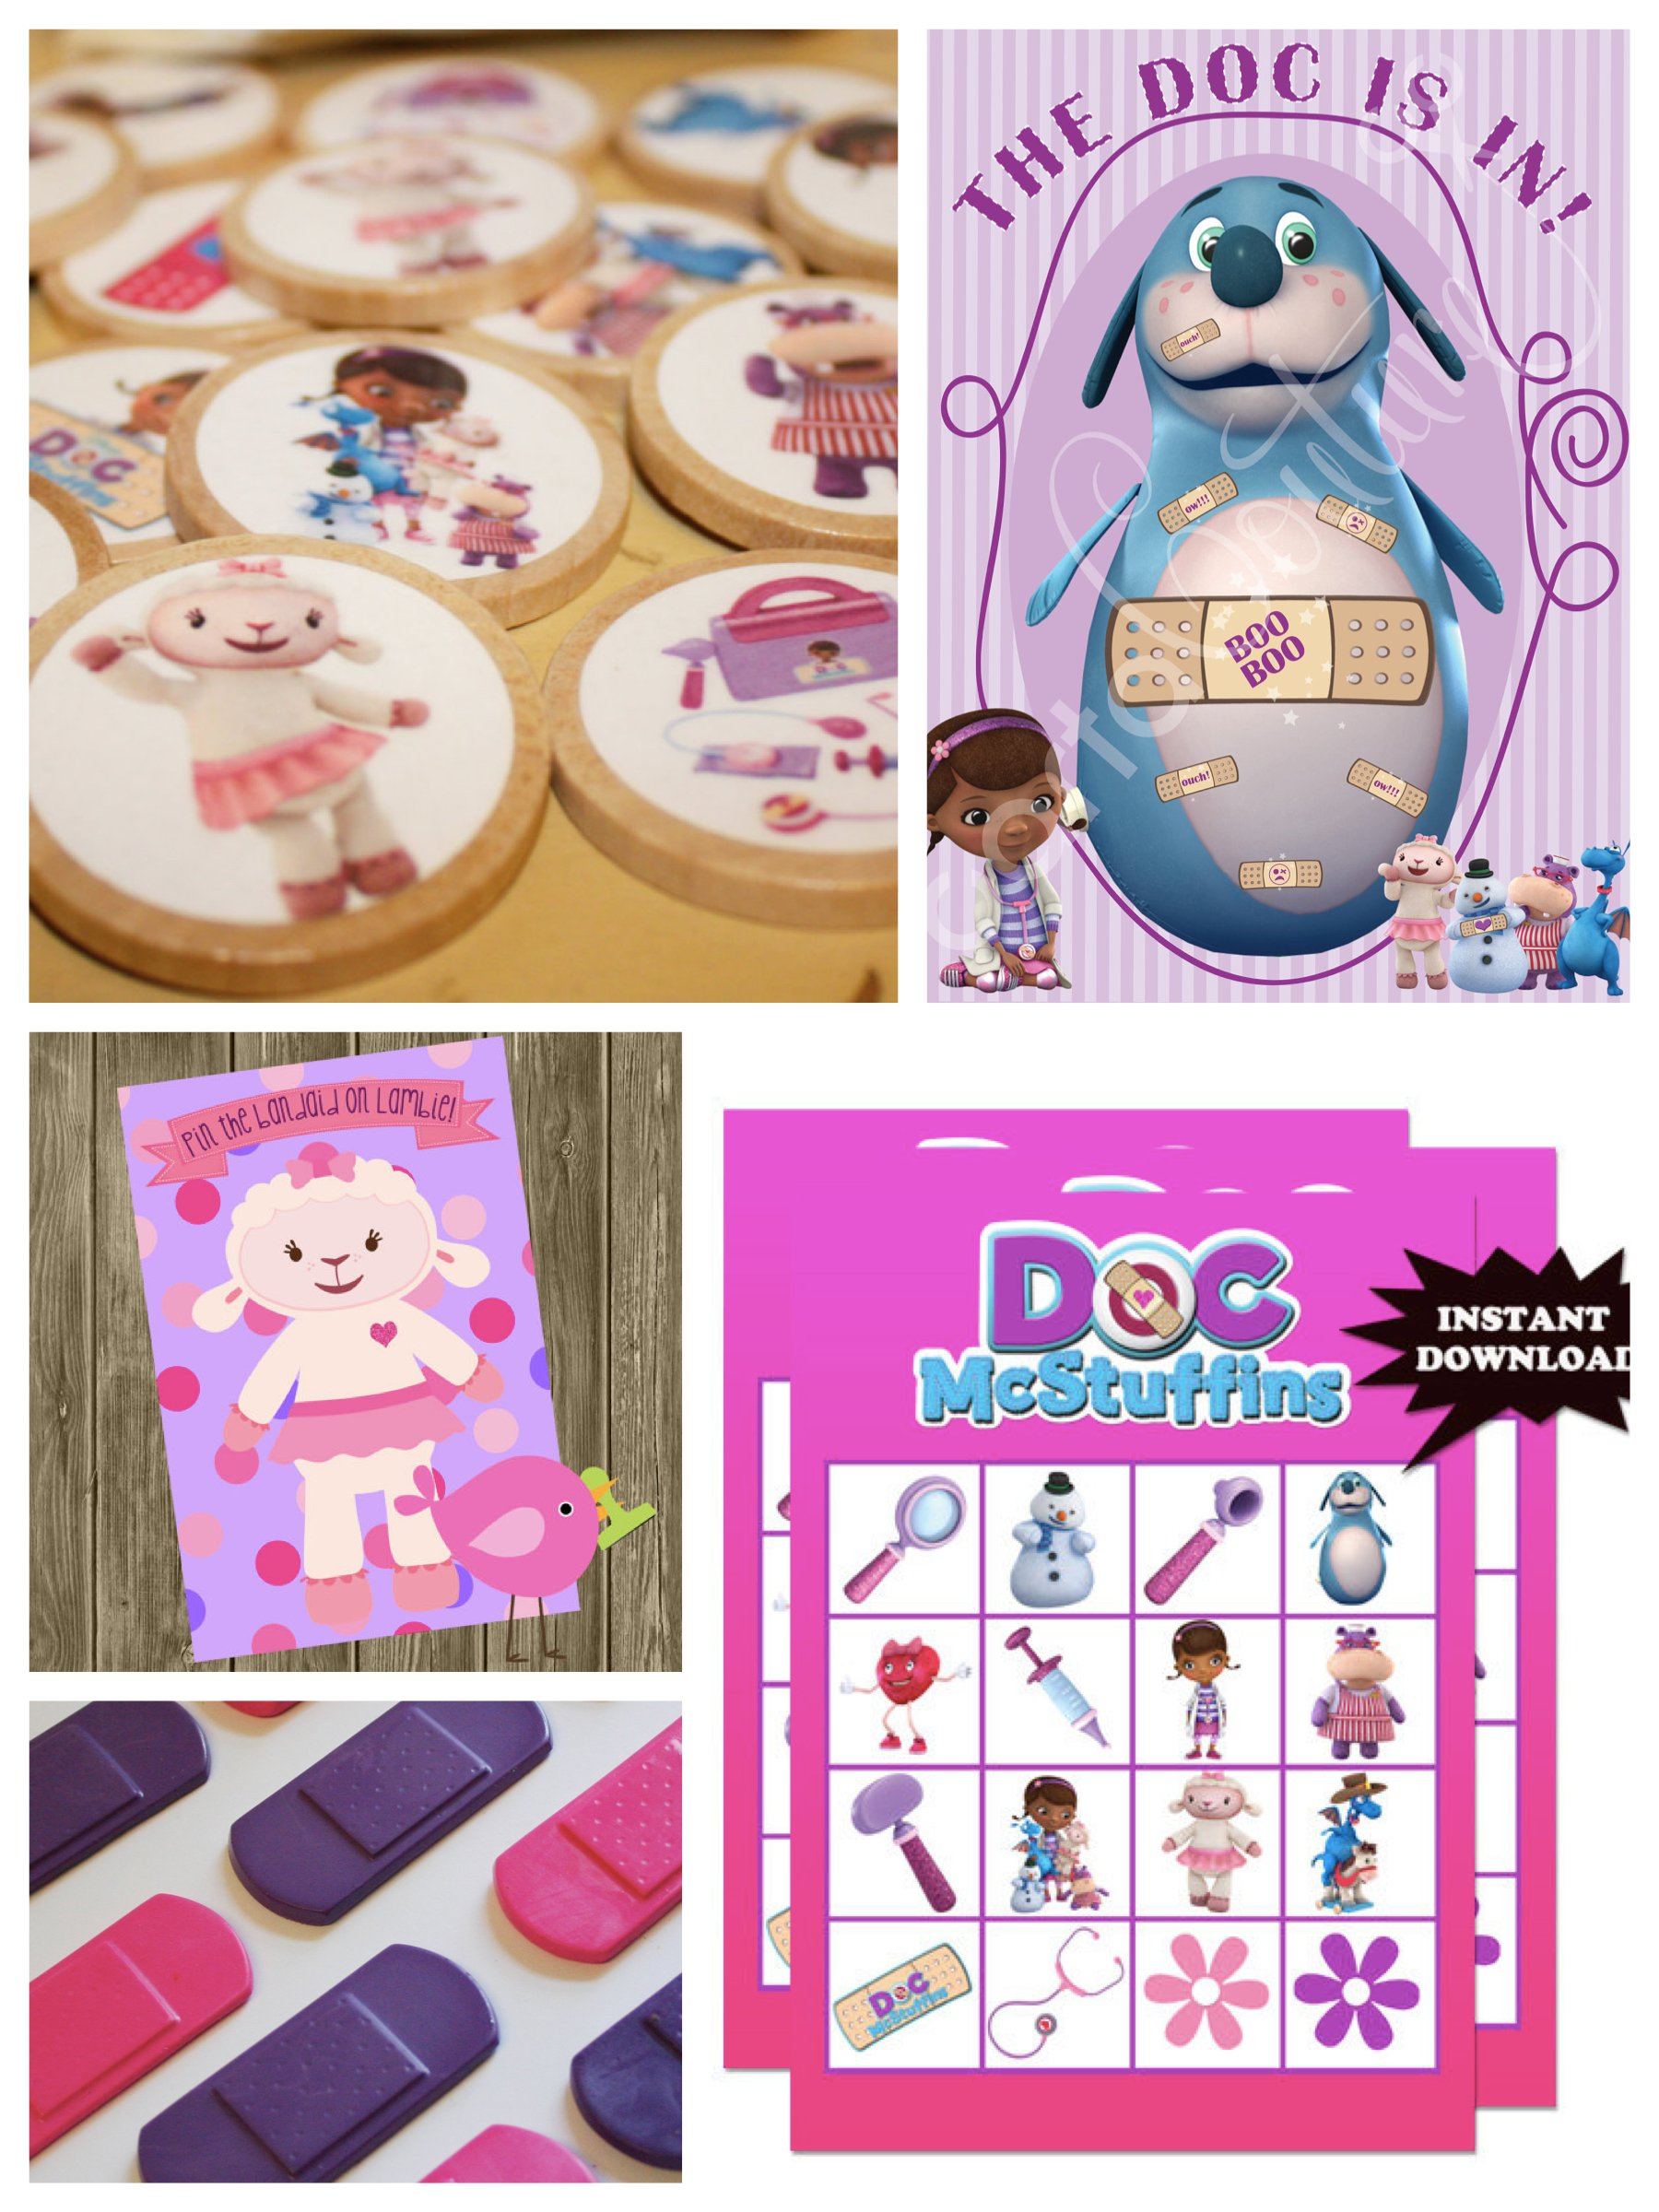 Doc McStuffins Birthday Party Games & Activities